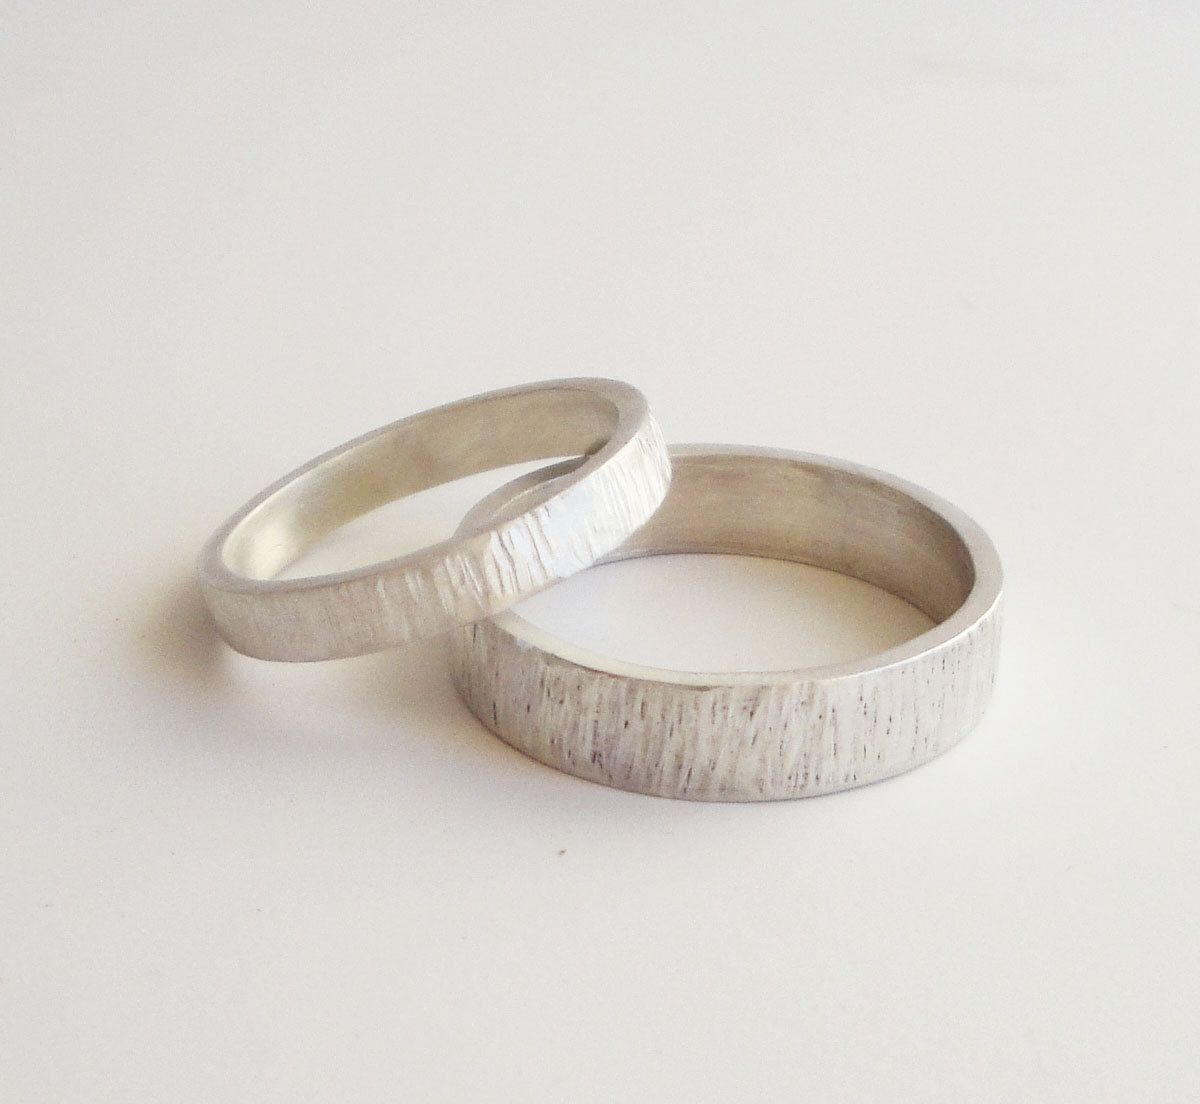 silver wedding rings set, handmade silver wedding band set, 5mm and